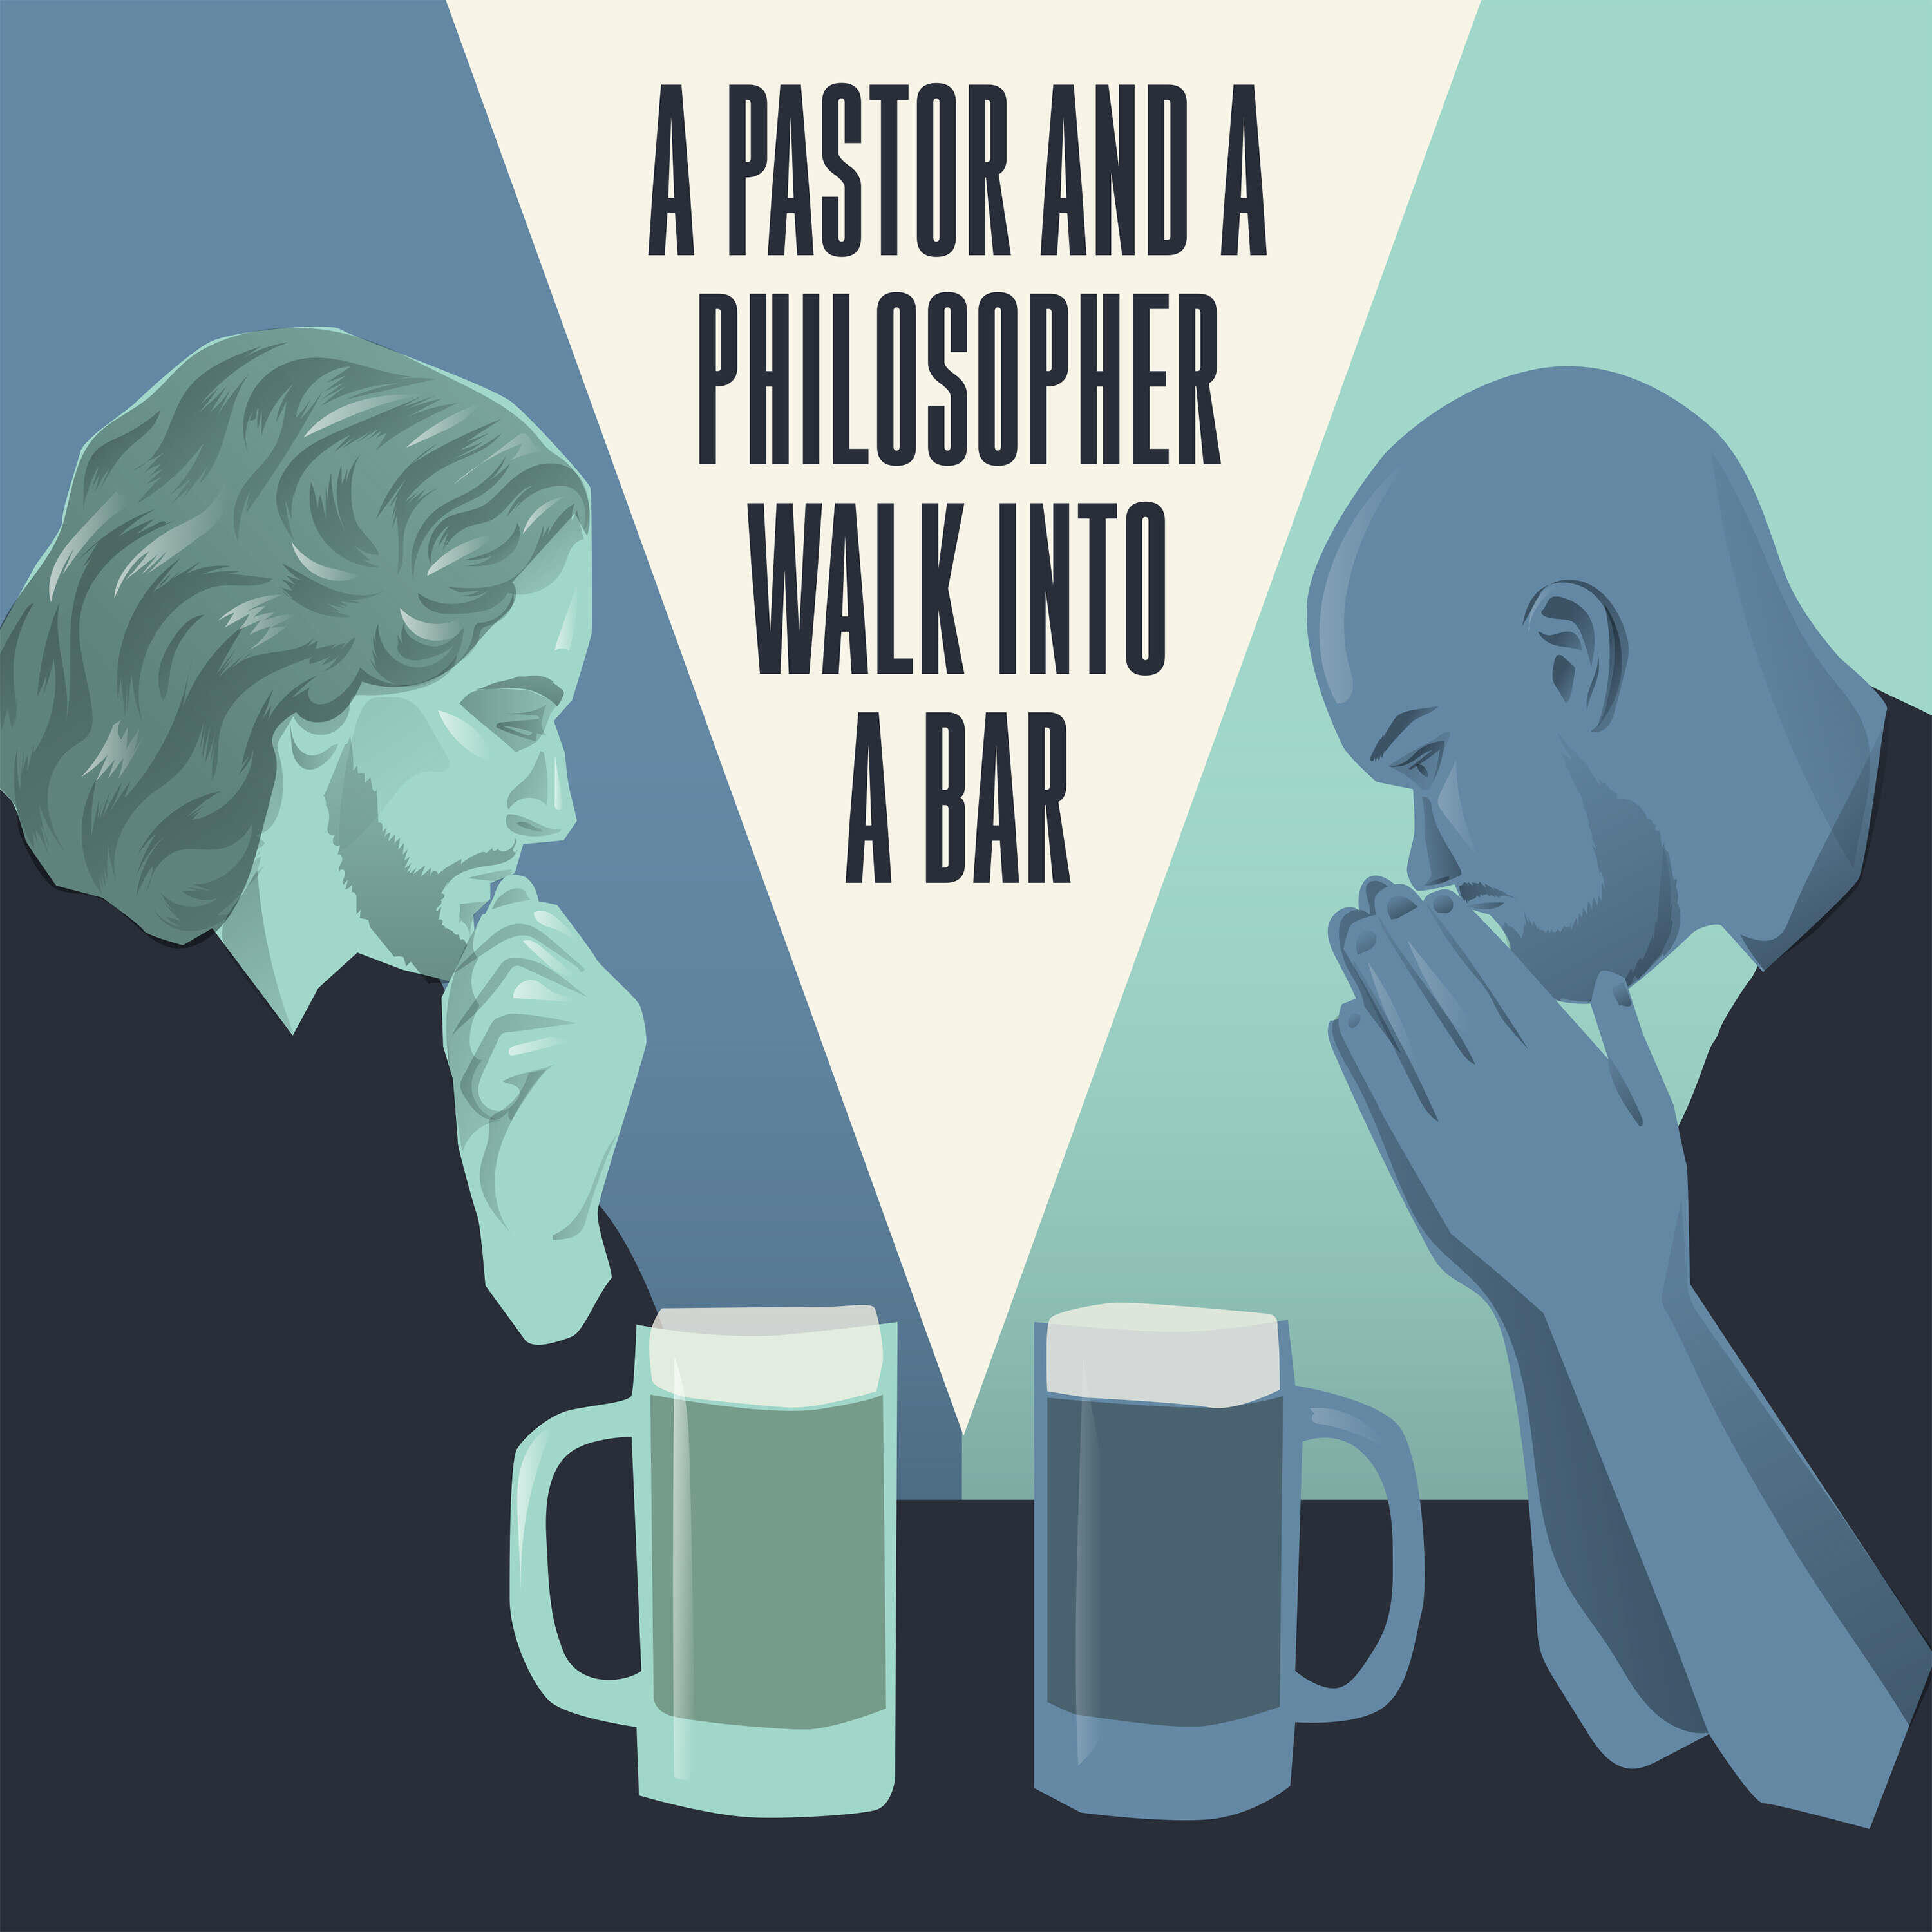 A Pastor and a Philosopher Walk into a Bar